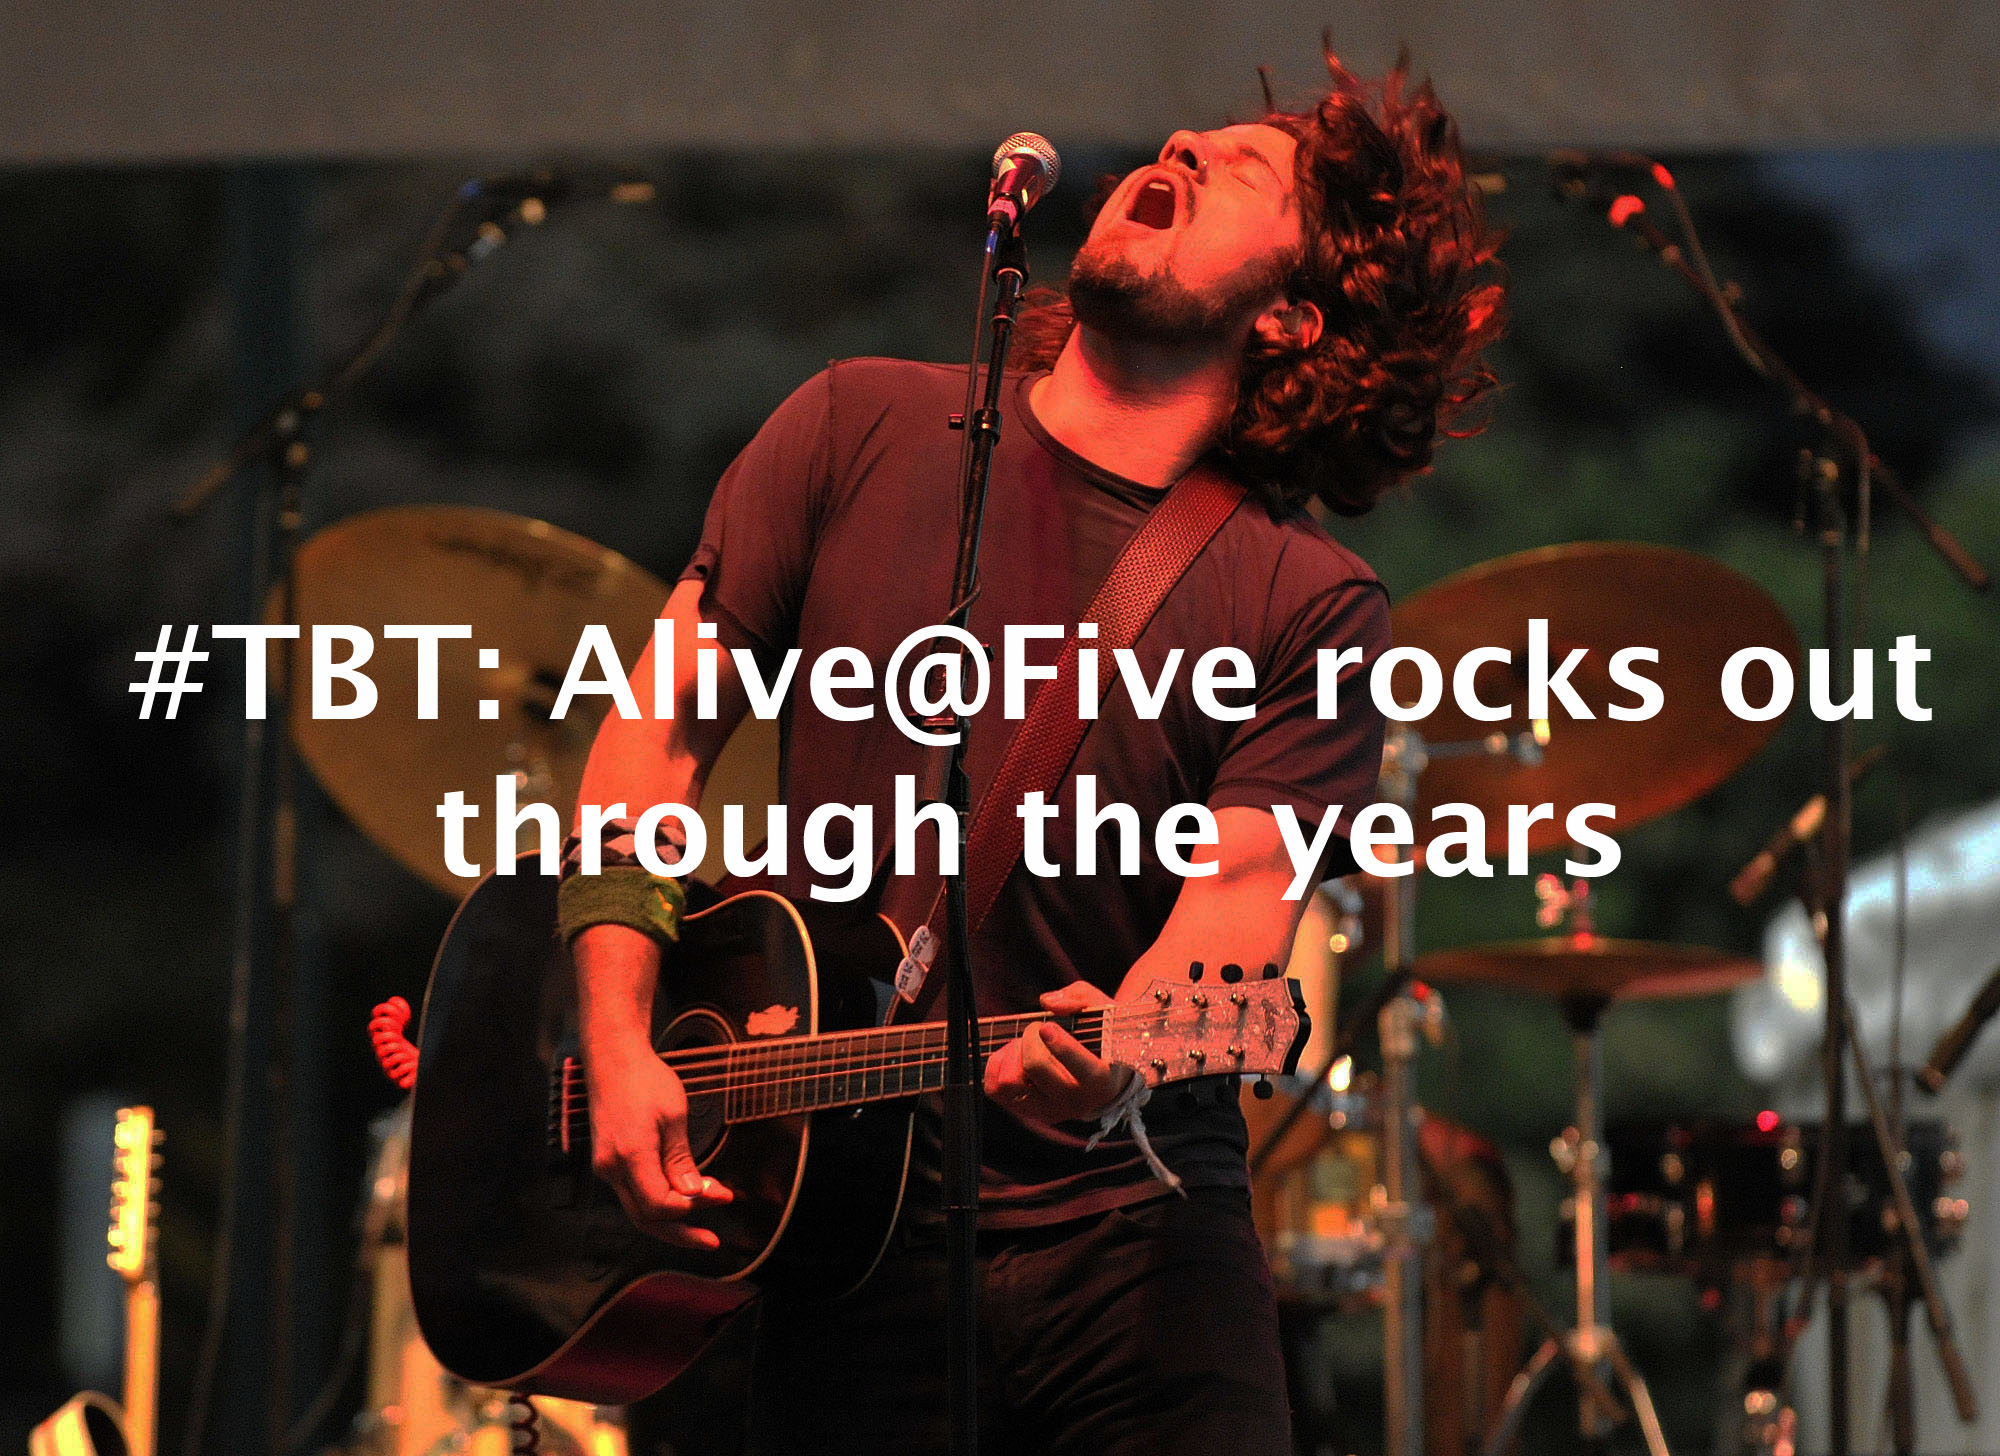 #ThrowbackThursday: Alive@Five rocks out through the years